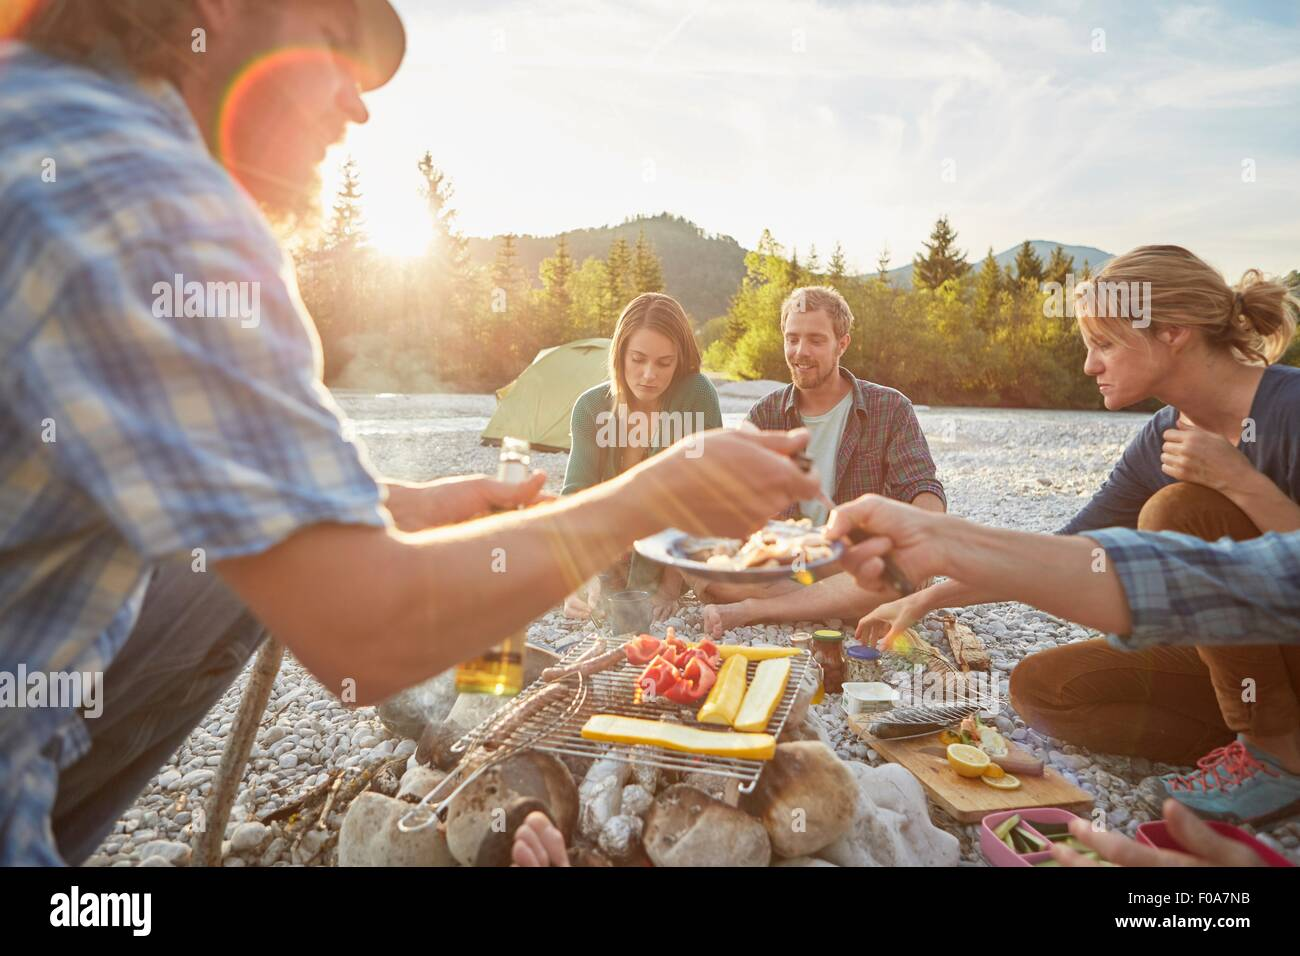 Les adultes assis autour de camp servant de la nourriture d'un barbecue Photo Stock